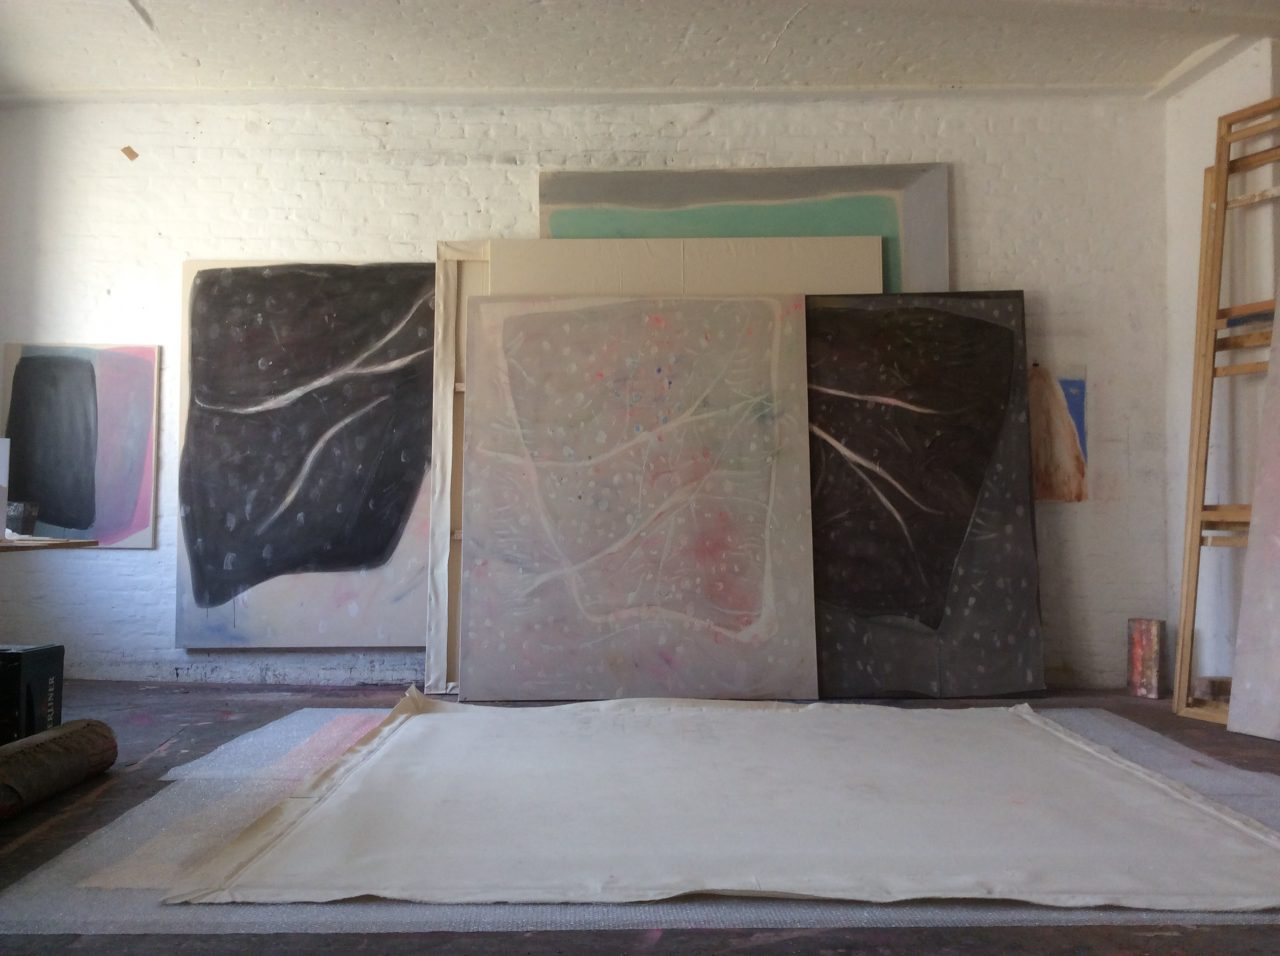 Studio prep,, The empty handed painter - series